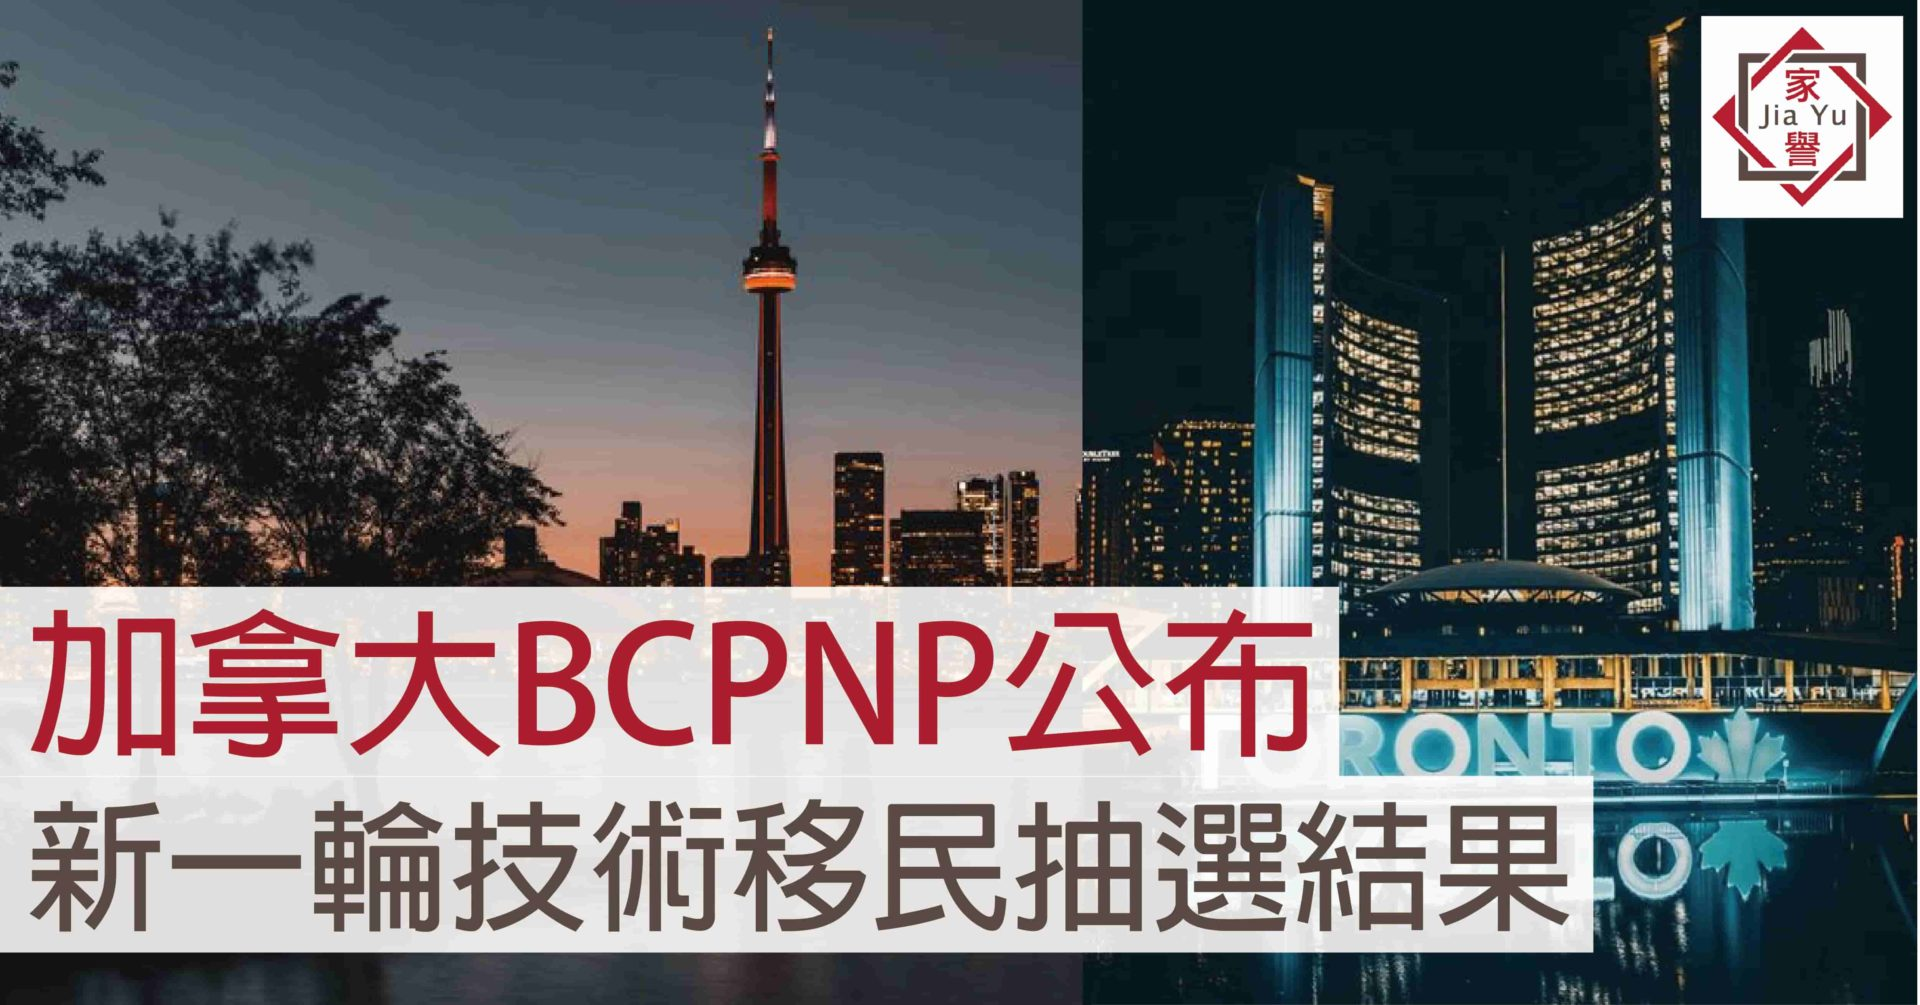 Canadian local time on April 16, Canada BCPNP official website announced a new round of skilled immigration selection results and 271 people invited this time | JiaYu